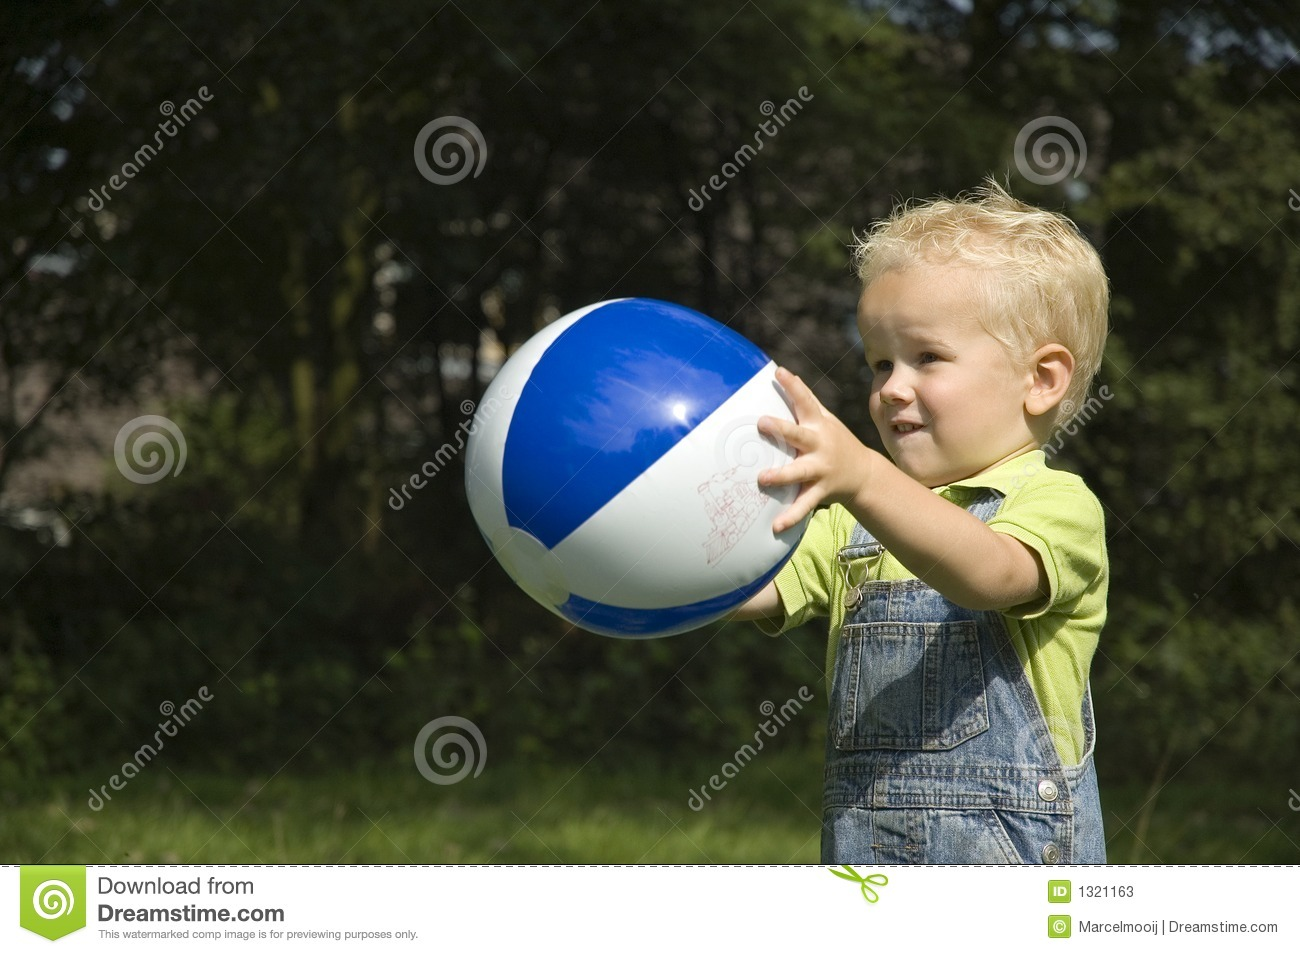 Catching The Ball -2 Stock Photos - Image: 1321163